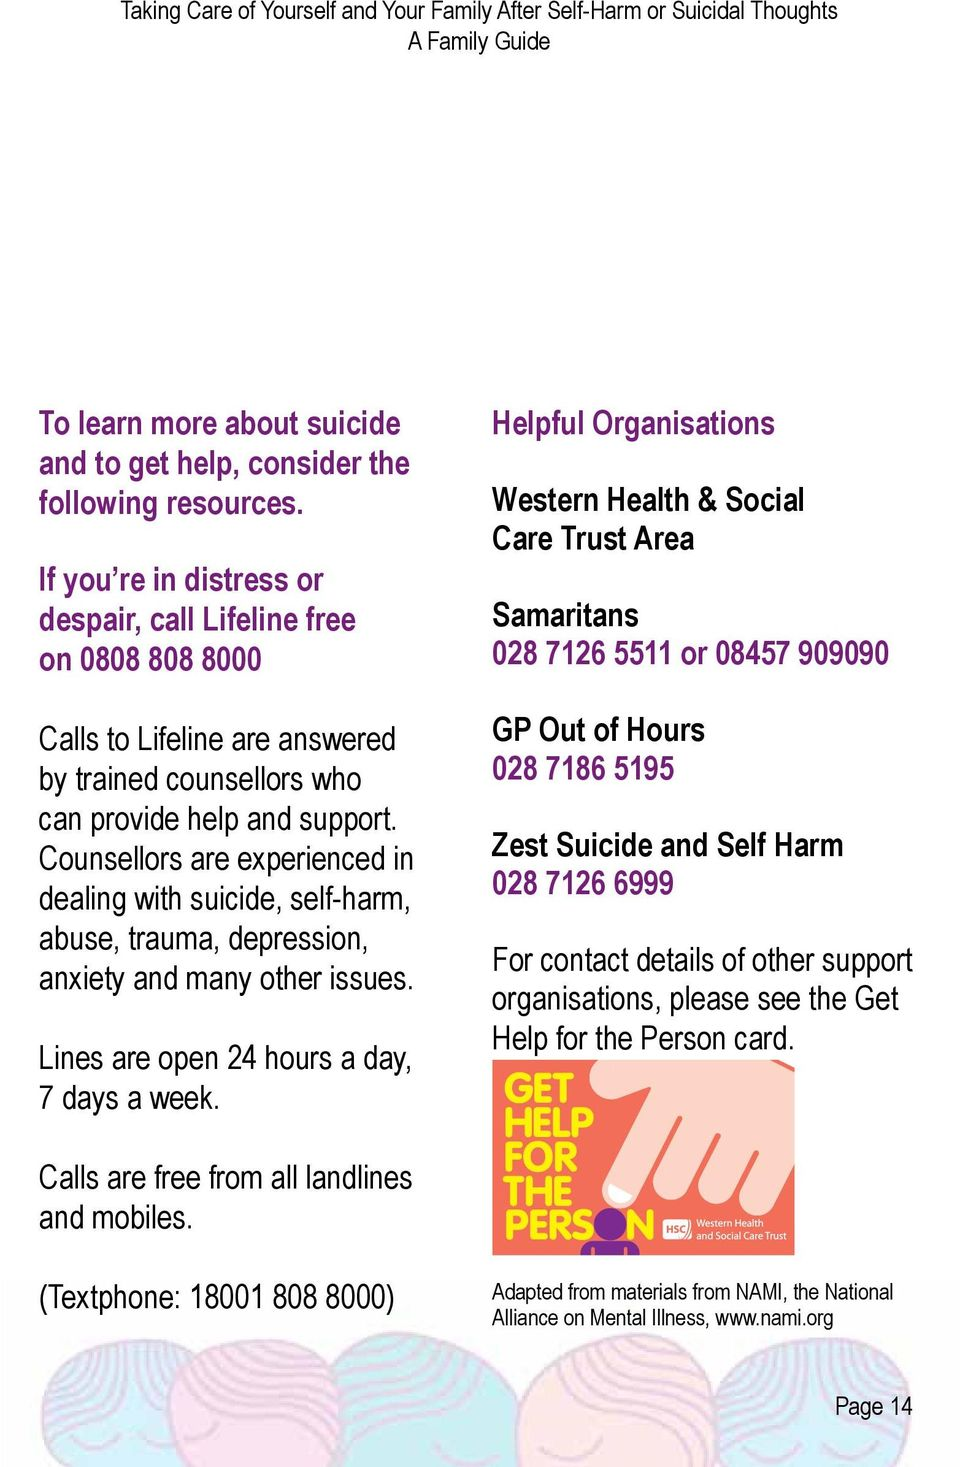 Counsellors are experienced in dealing with suicide, self-harm, abuse, trauma, depression, anxiety and many other issues. Lines are open 24 hours a day, 7 days a week.